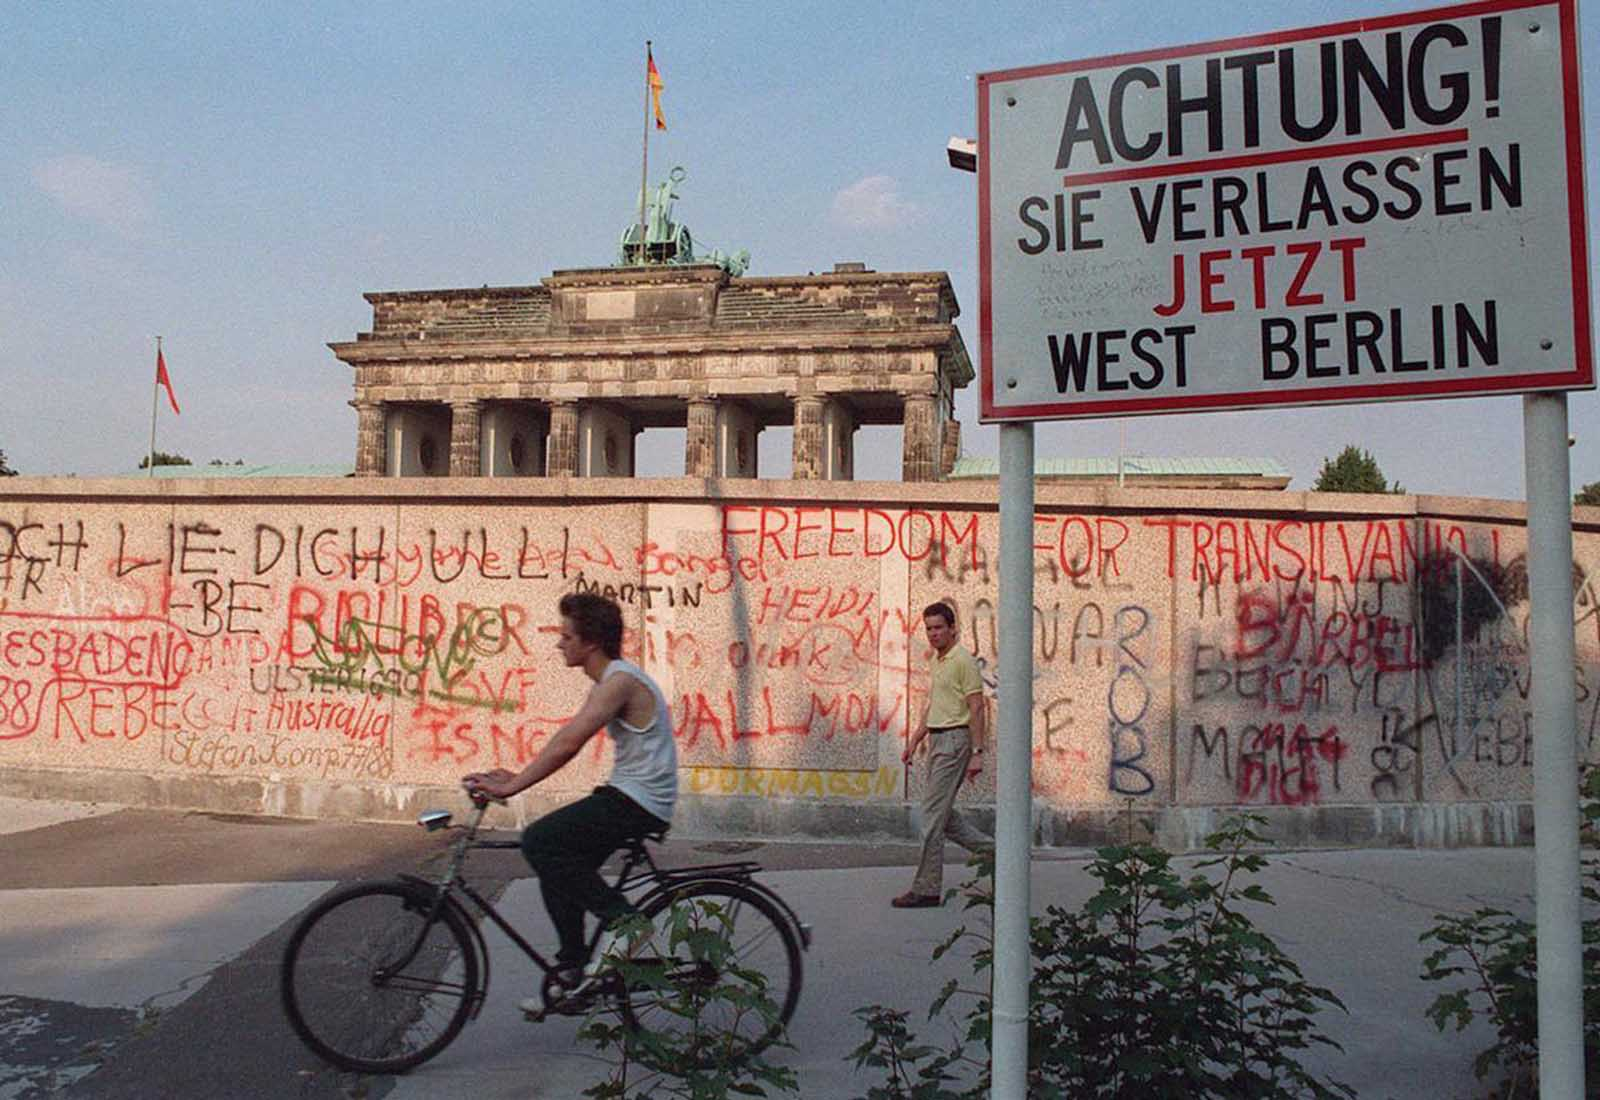 A graffiti-covered section of the wall close to the Brandenburg Gate in Berlin in 1988. Sign reads: